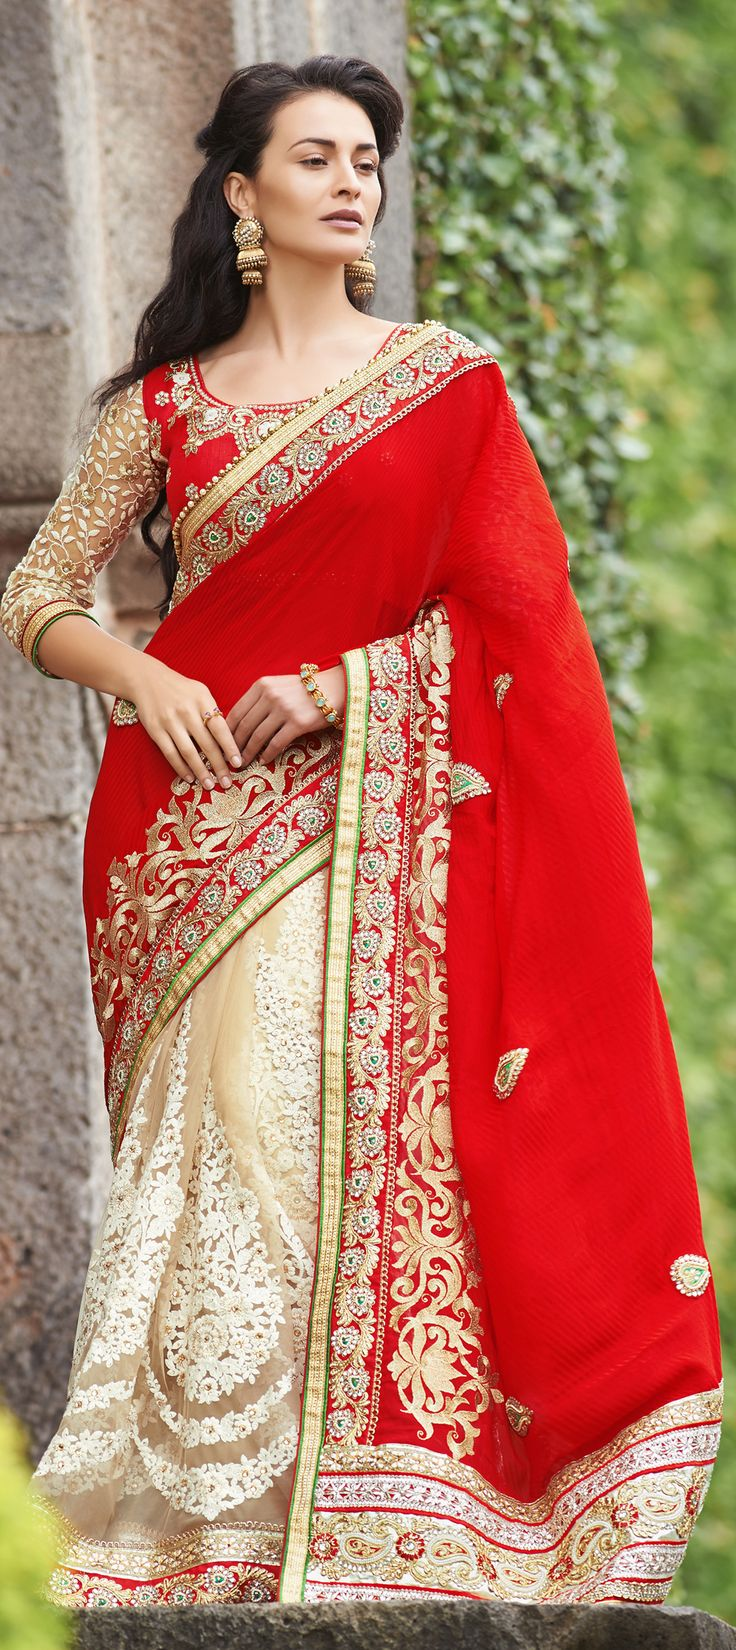 150140 Red and Maroon, Beige and Brown color family Saree